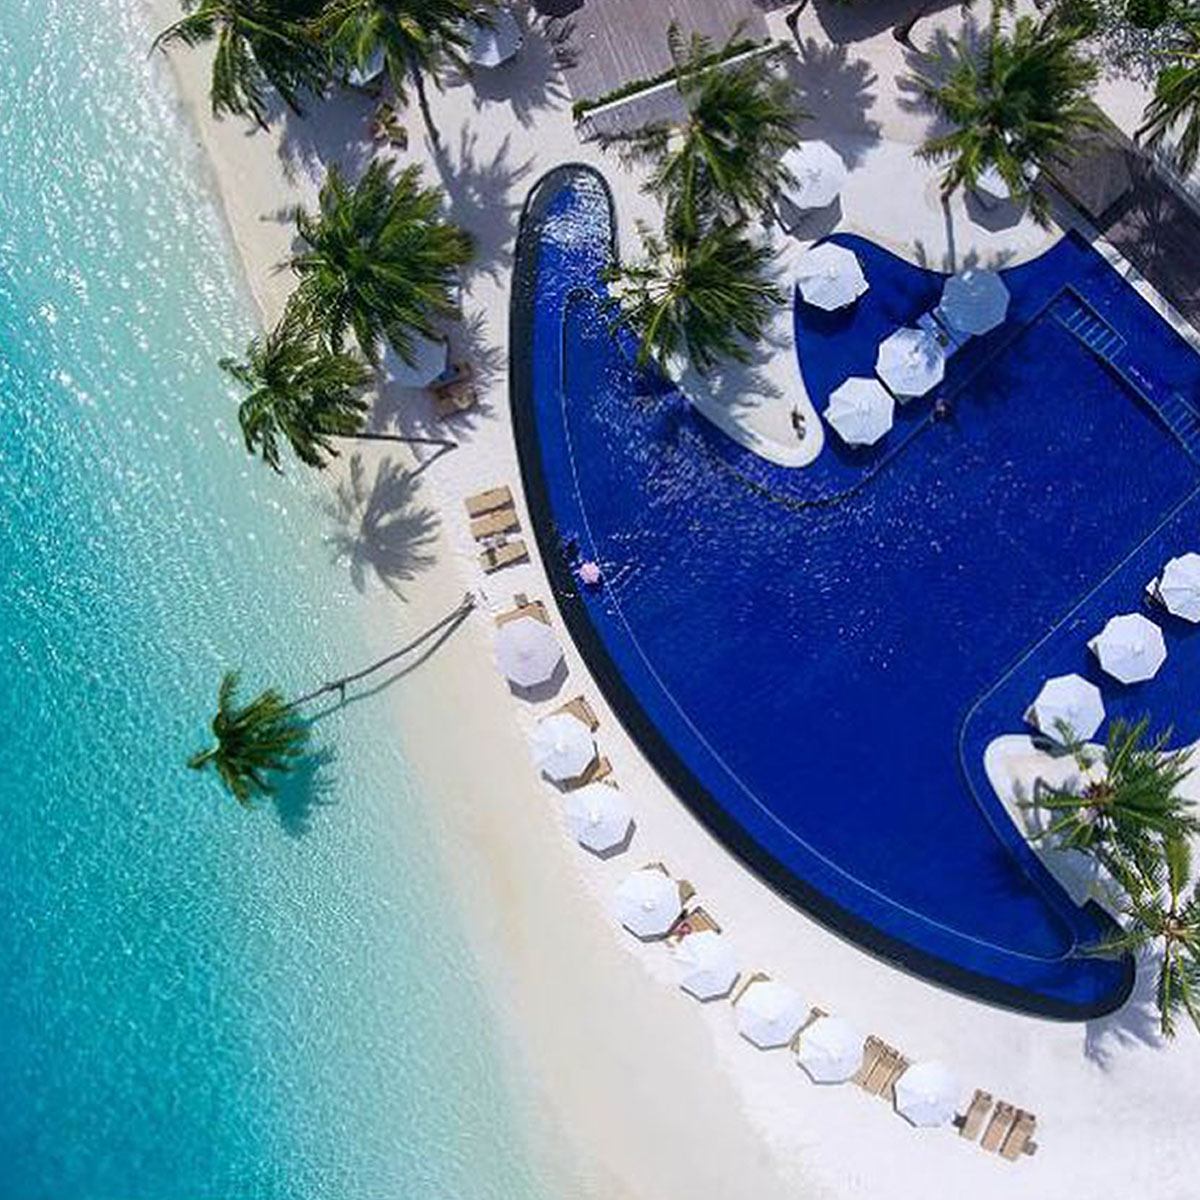 Beach and pool, aerial view, Winter vacations & holiday travel, luxury hotels